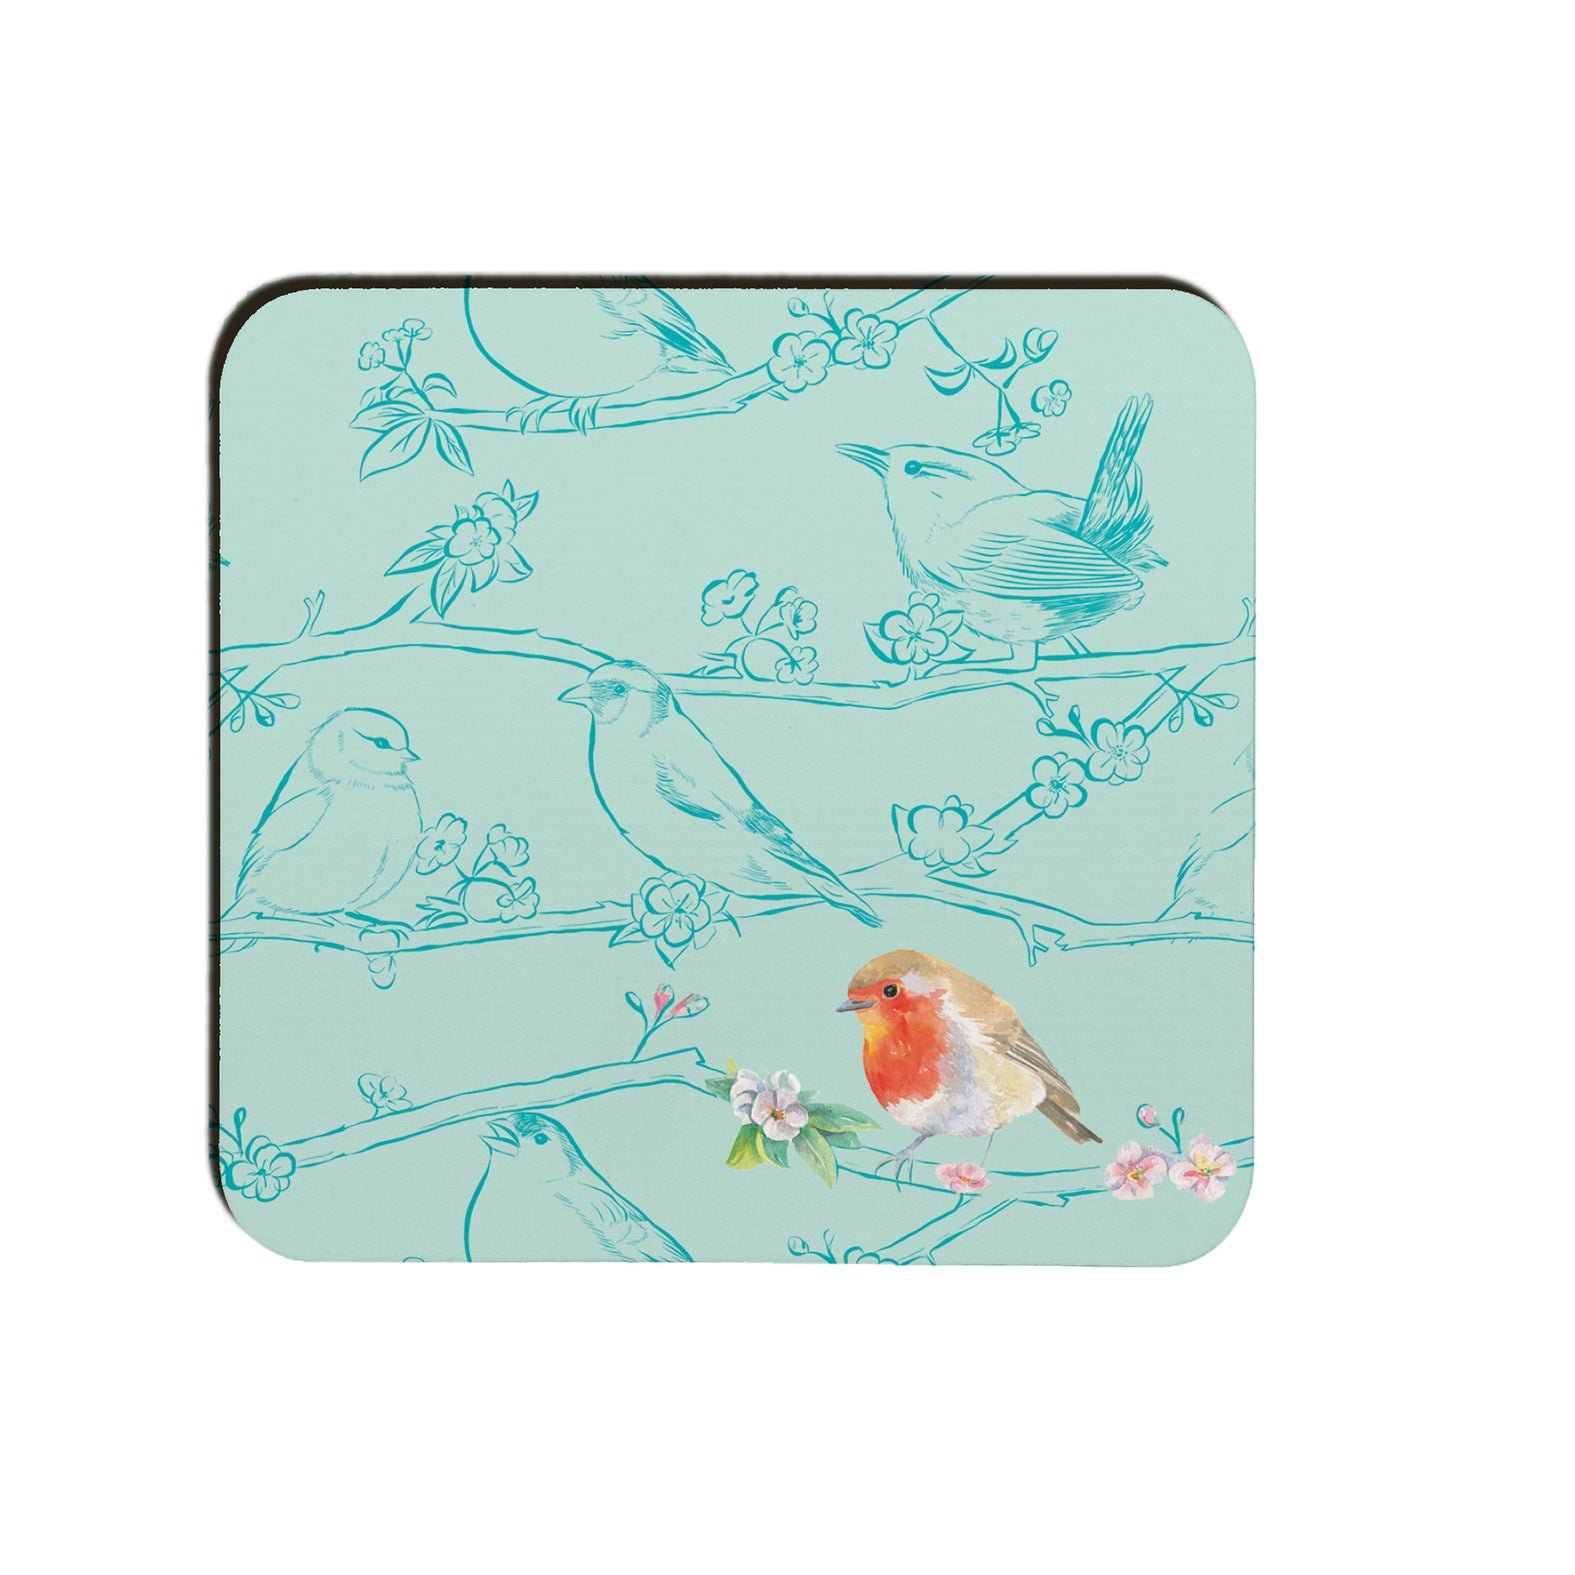 Garden birds robin coaster Ceinwen Campbell The Arty Penguin